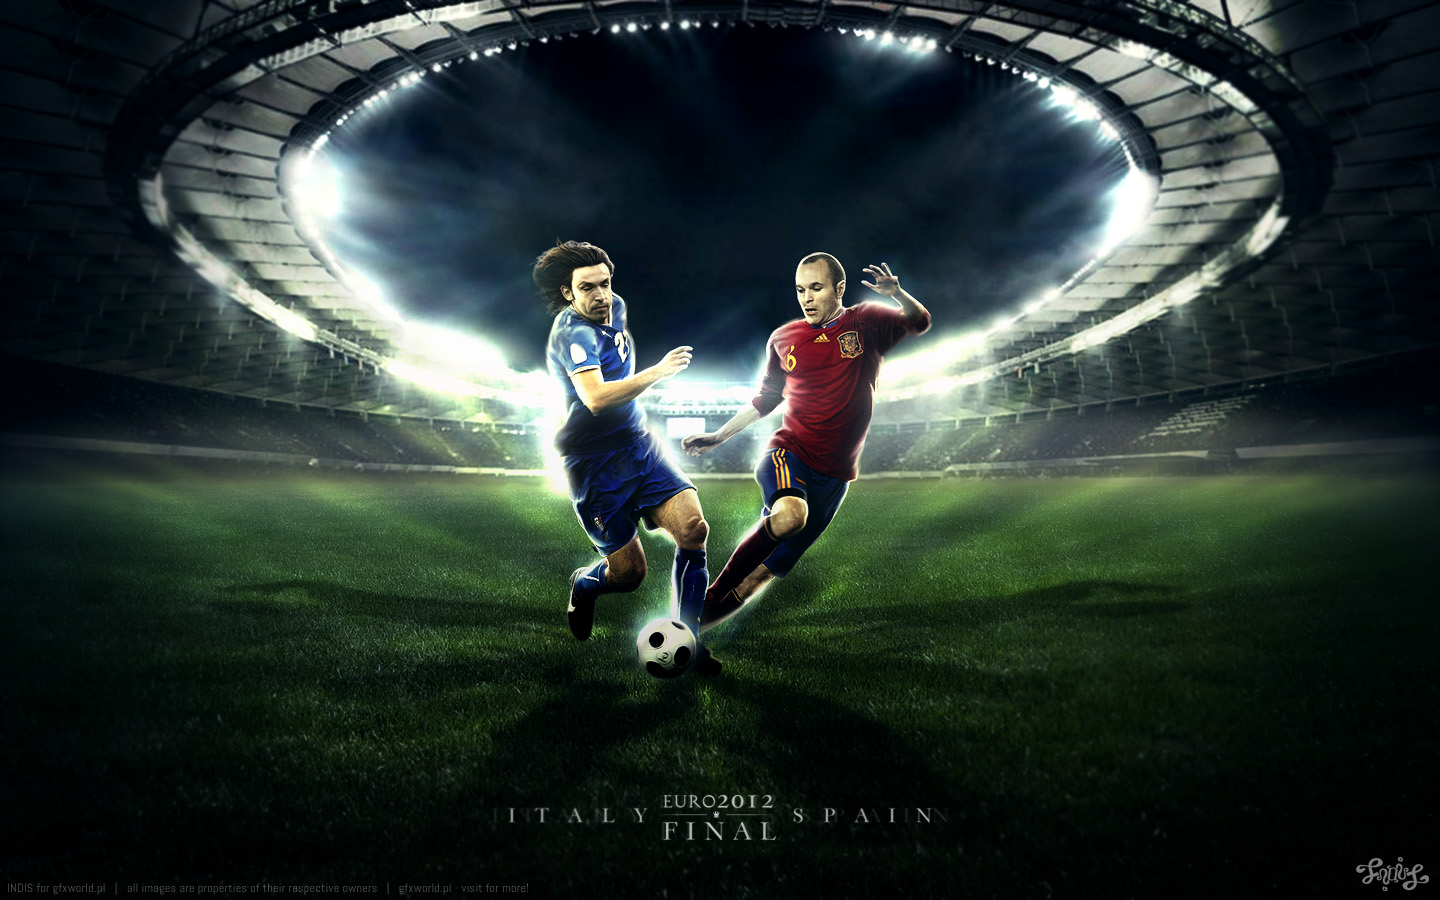 euroitaly vs spain football wallpaper 28